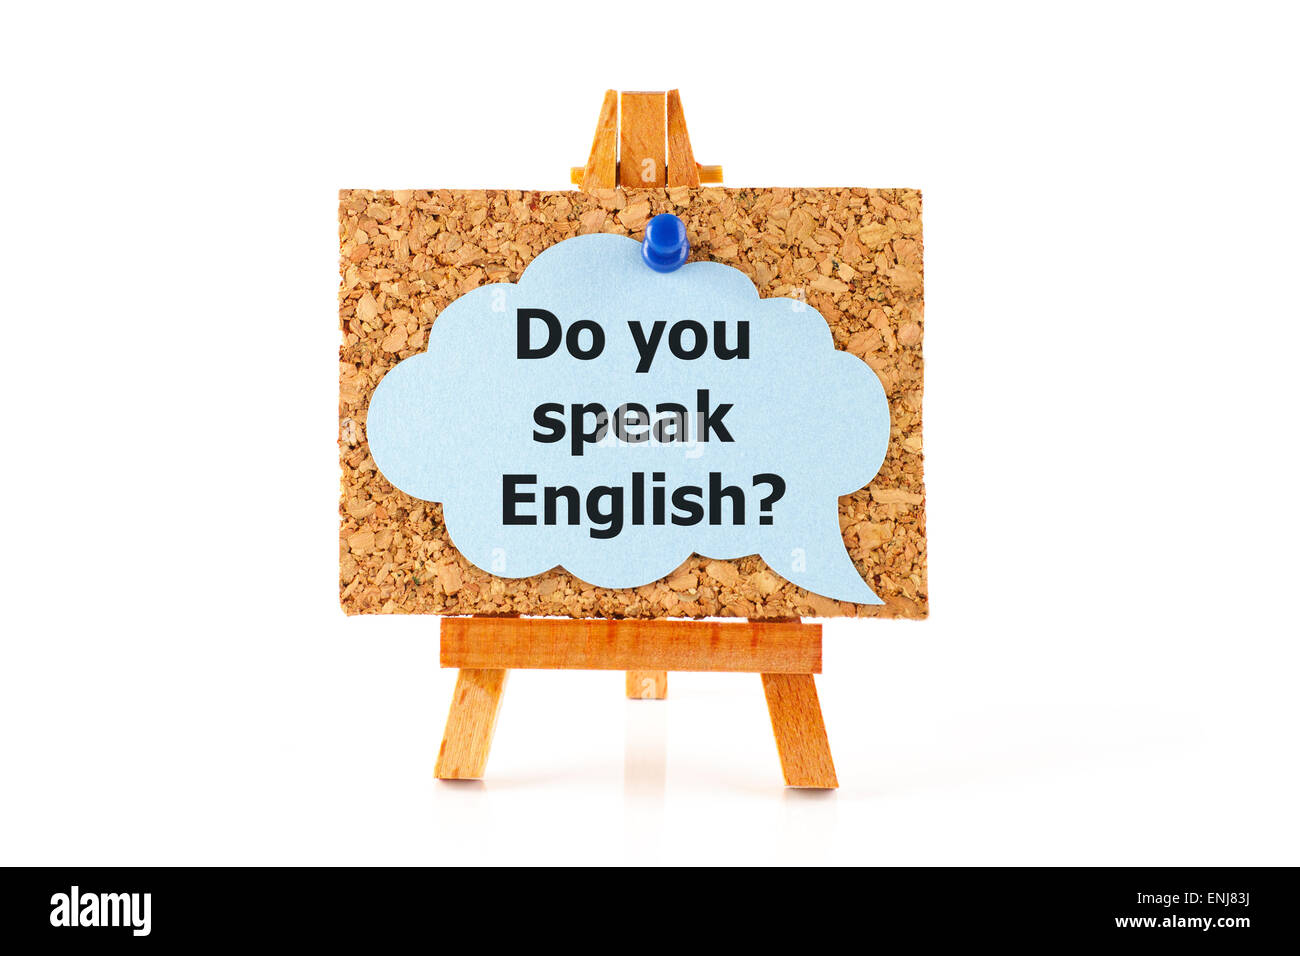 Wooden easel with corkboard and blue speech bubble with words Do you speak English? isolated on white background - Stock Image